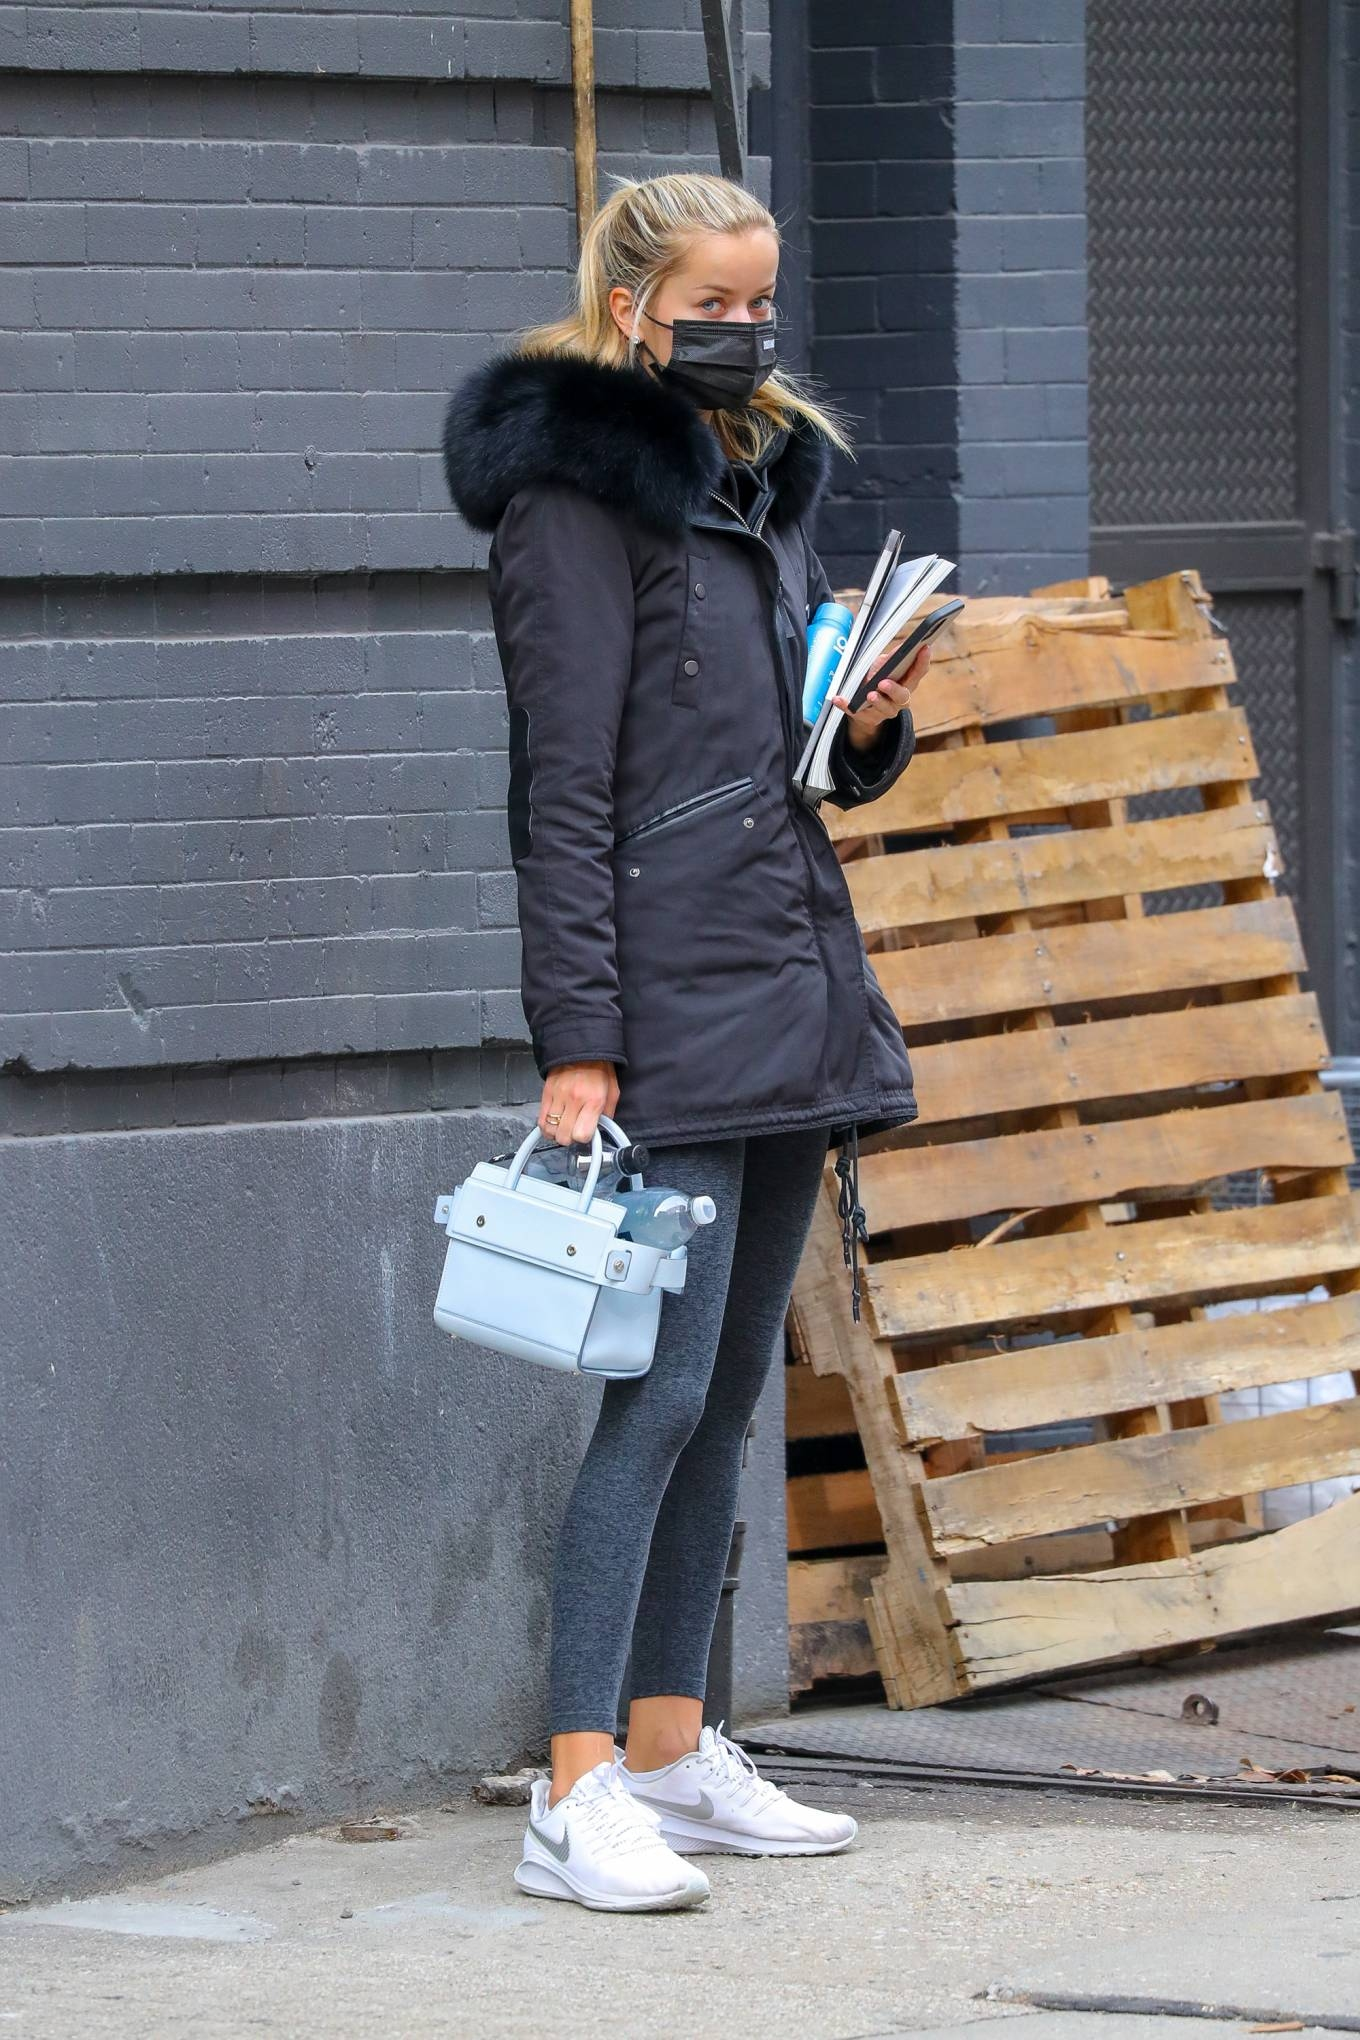 Frida Aasen donning brand logo white Nike lace-up sneakers